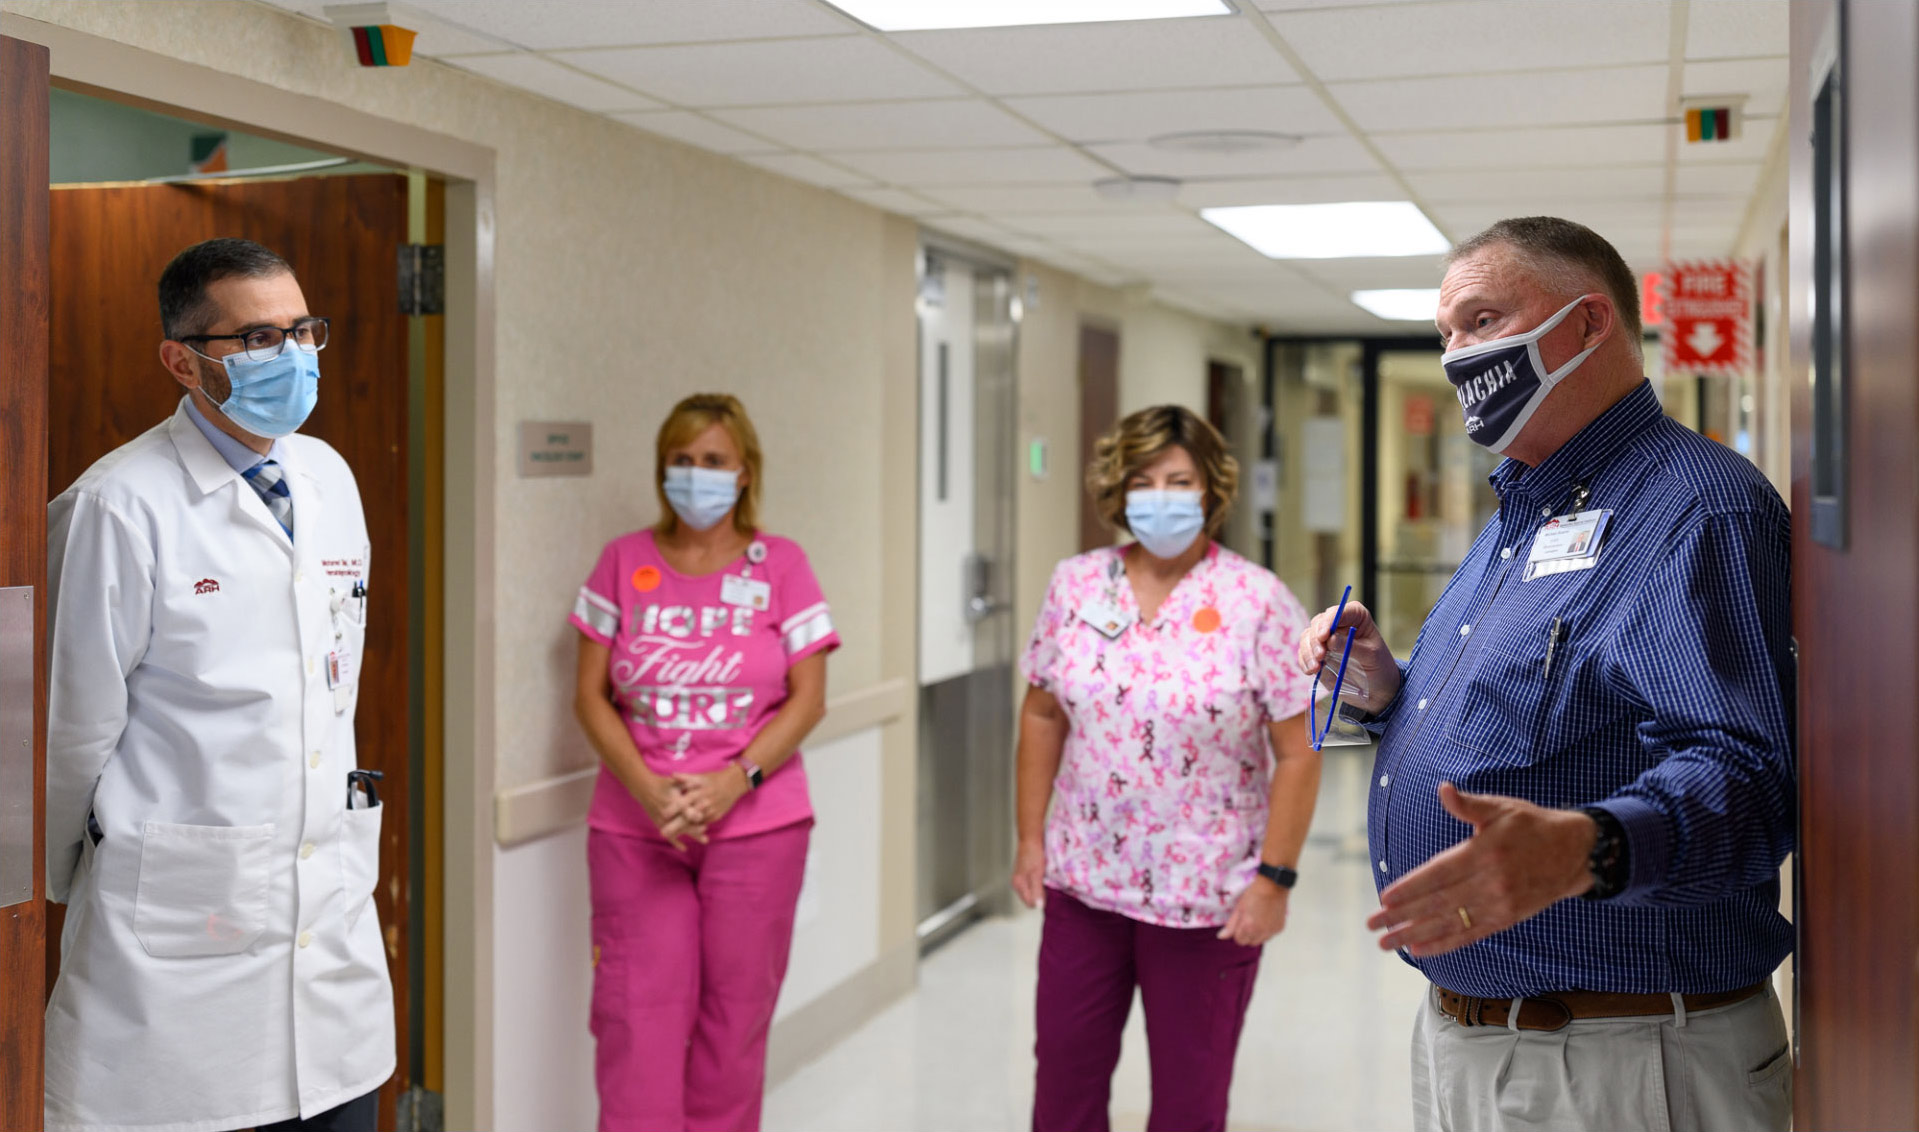 A photo of Michael speaking to Dr. Shanshal and two nurses inside Middlesboro ARH.